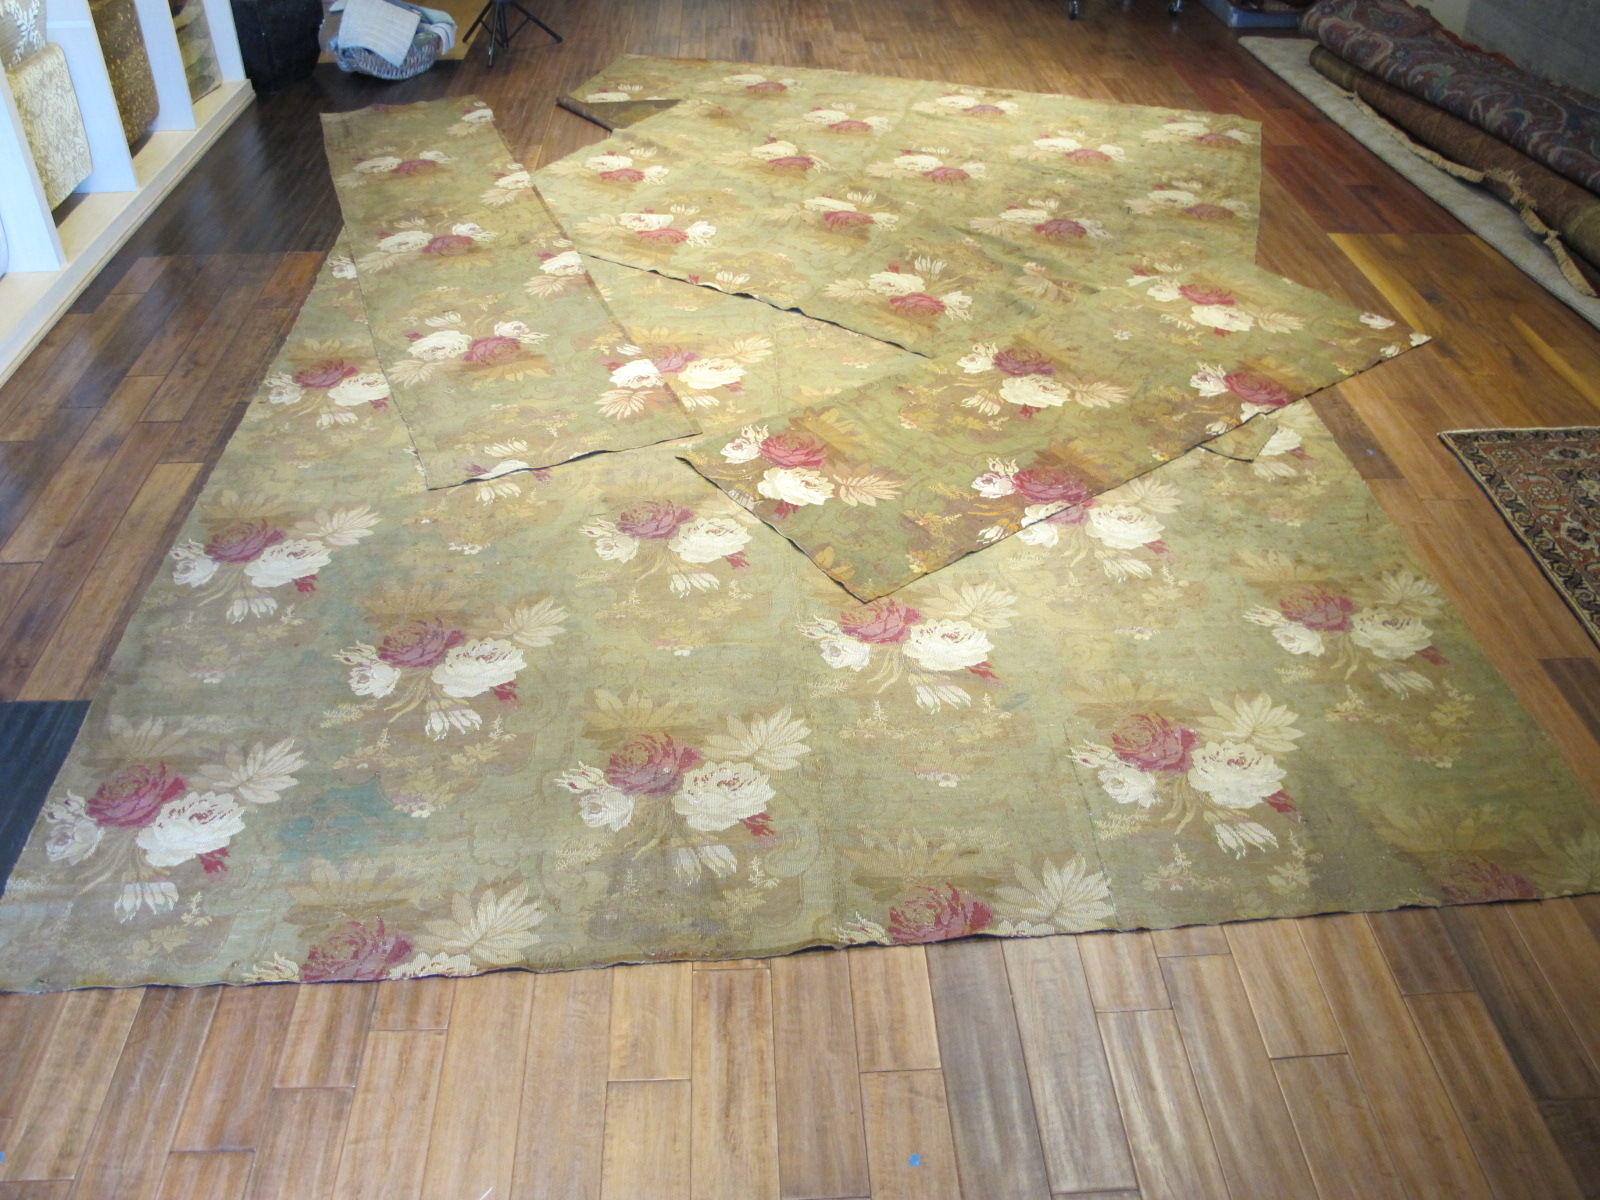 13038 Group of 4 European Jacquard loom rugs